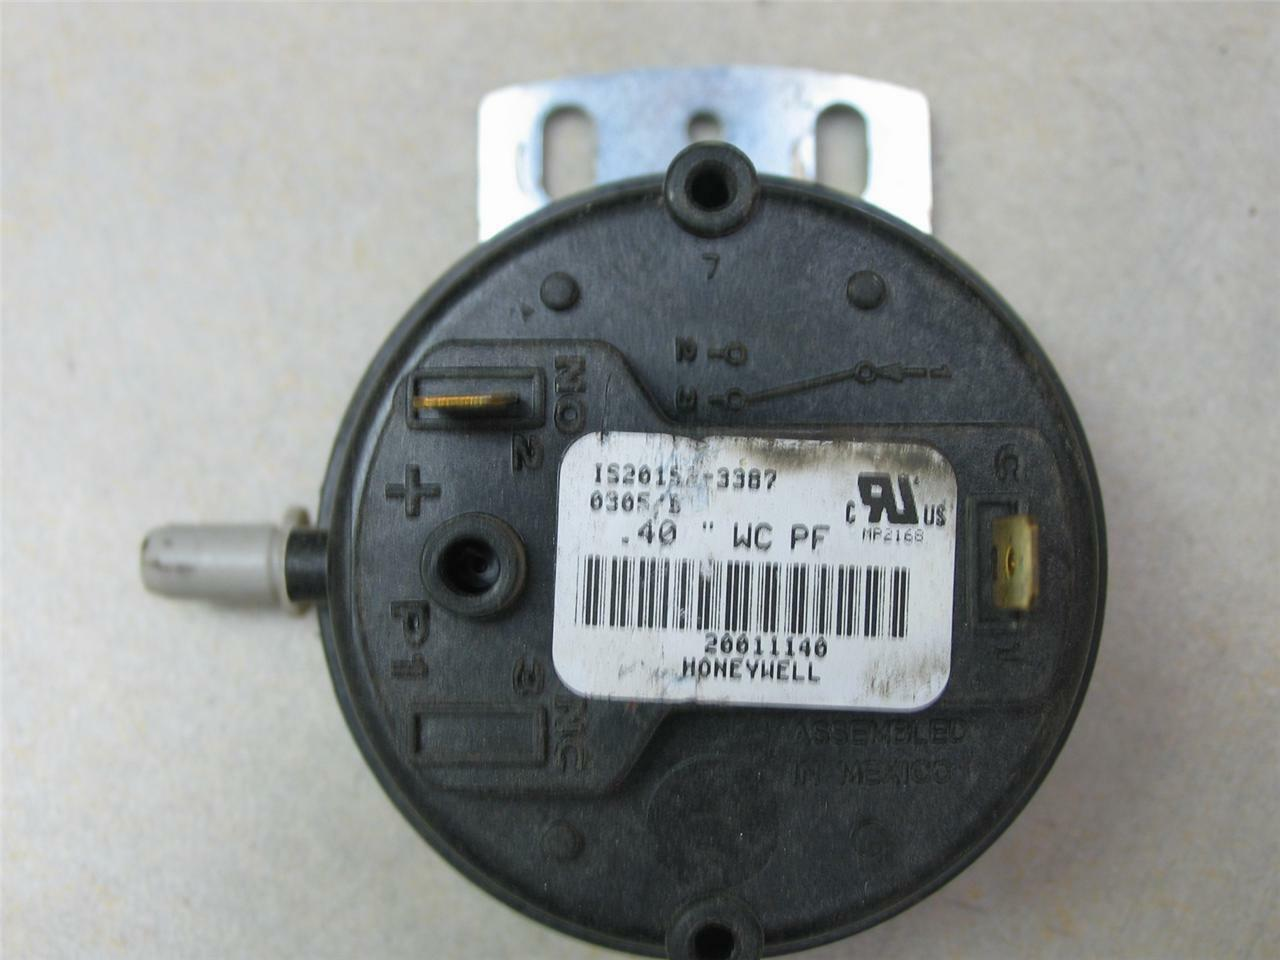 Honeywell 20011140 Furnace Air Pressure Switch Is20152 3387 Ebay Carrier Bryant Hh84aa011 Control Circuit Board Norton Secured Powered By Verisign